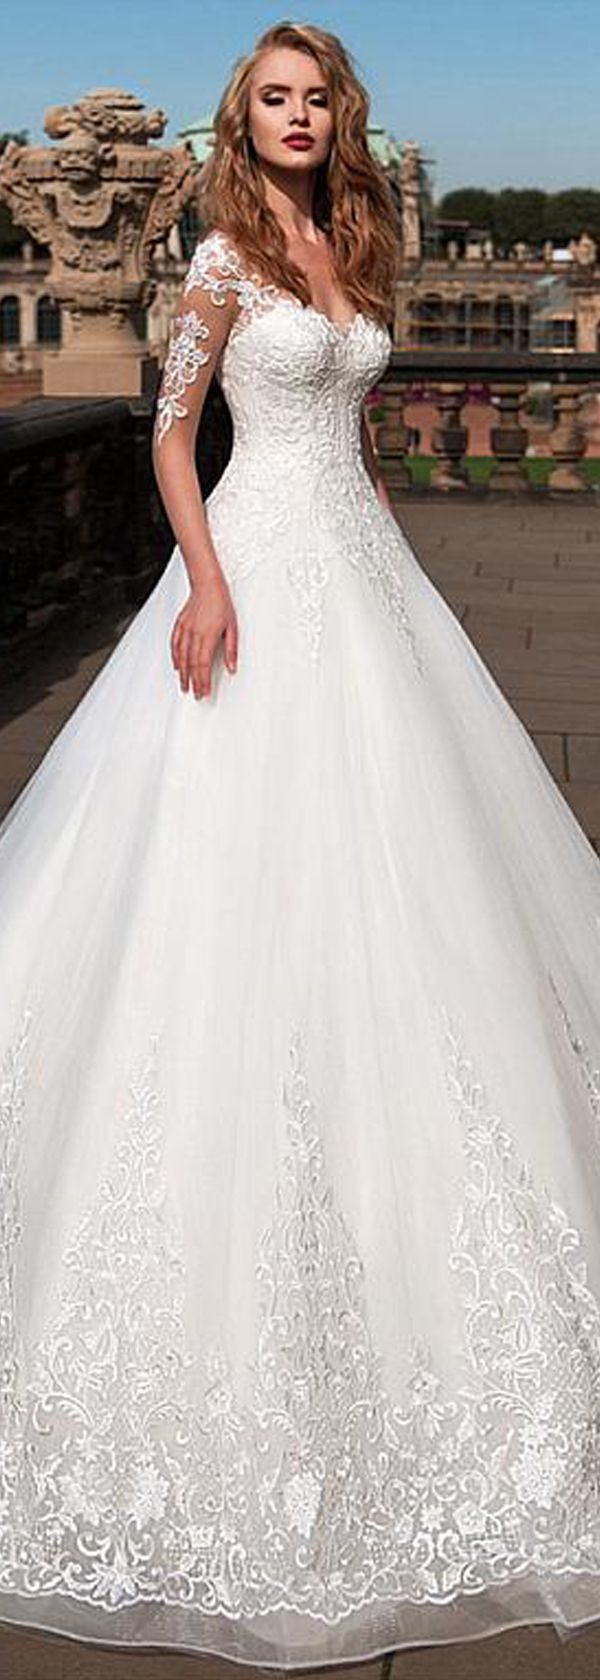 [285.60] Attractive Tulle Sheer Bateau Neckline A-Line Wedding Dress with Lace Appliques #spitzeapplique